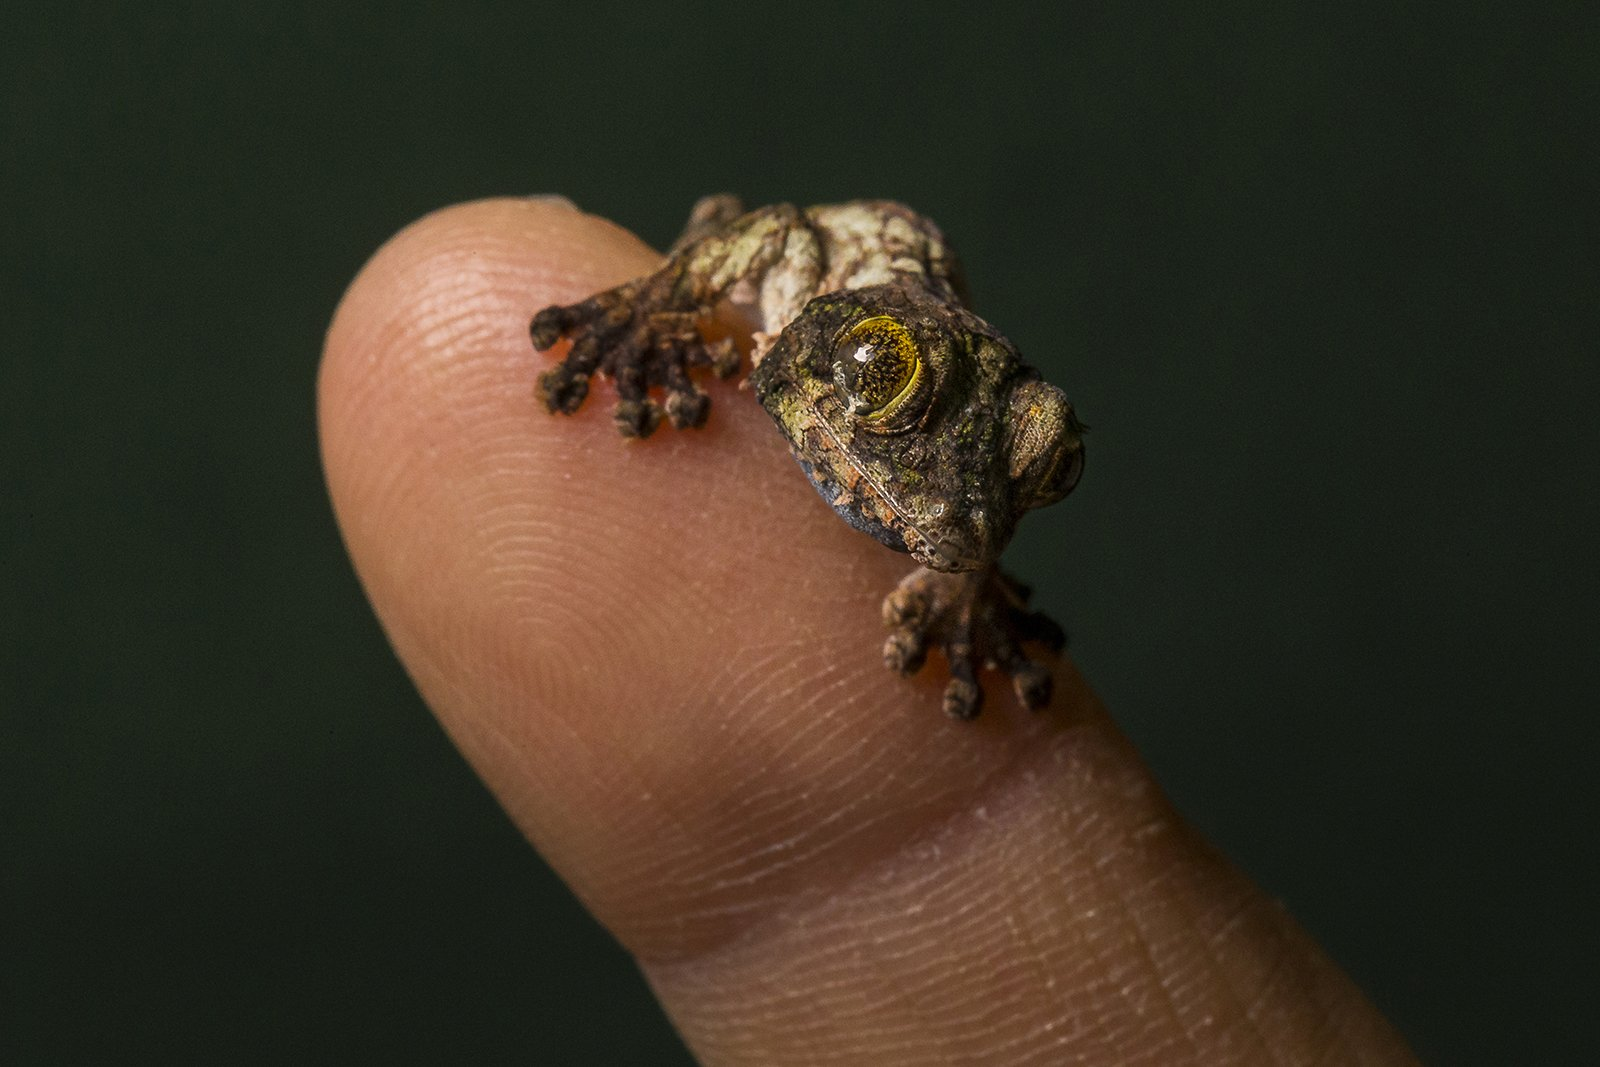 For the reptile lovers: A tiny mossy leaf-tailed gecko. 💚 #CuteAnimalTweetOff https://t.co/ZX5DN1iNG8